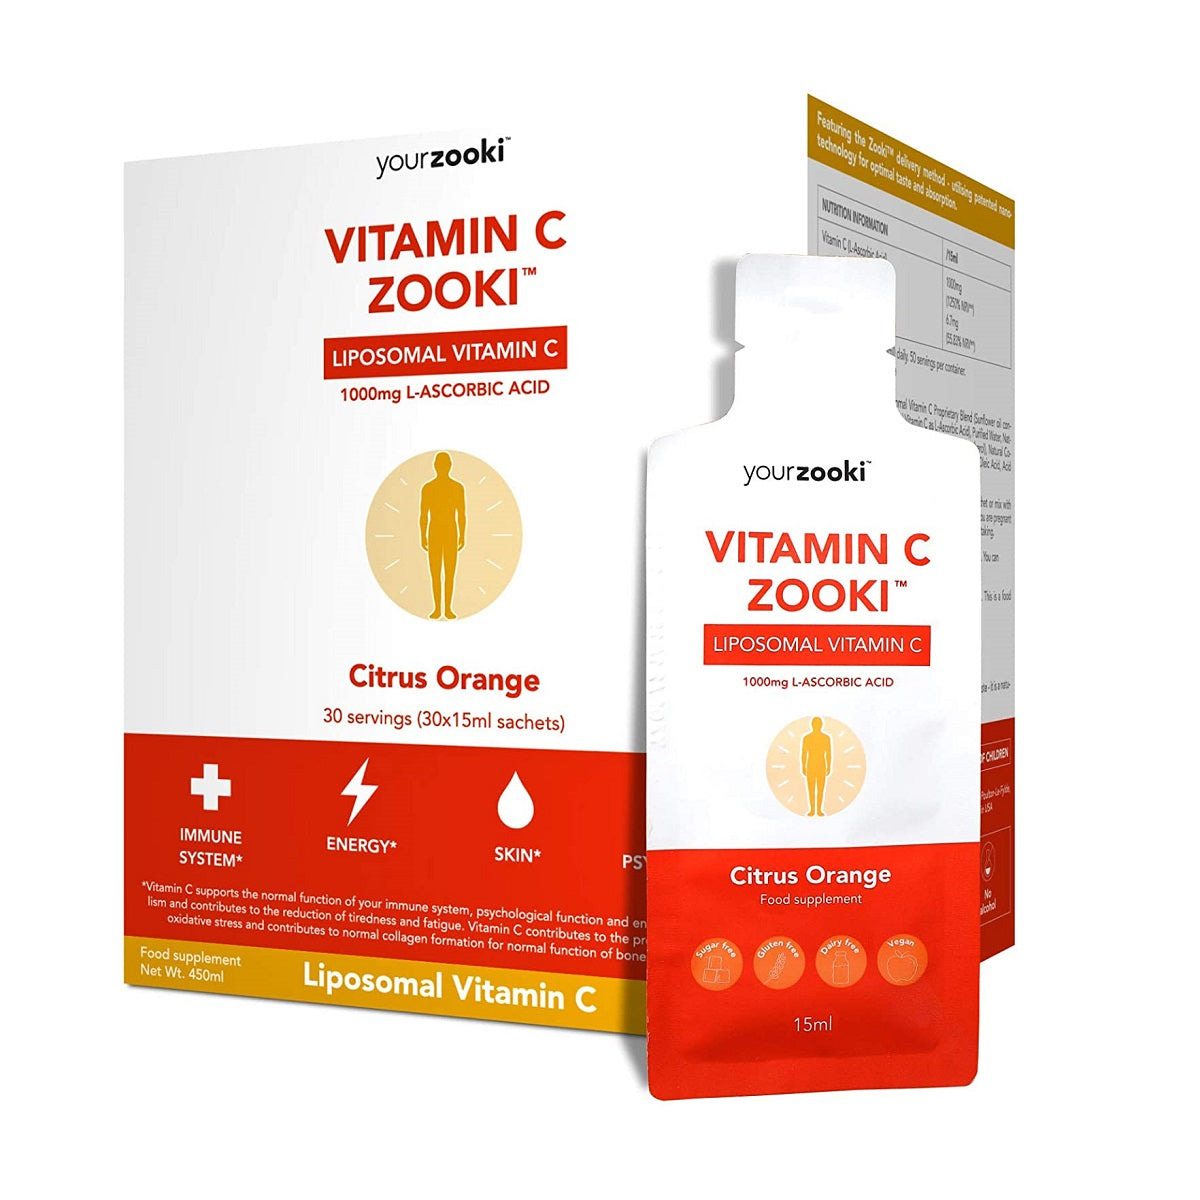 Yourzooki Vitamin C Zooki, Liposomal Vitamin C 30 Servings